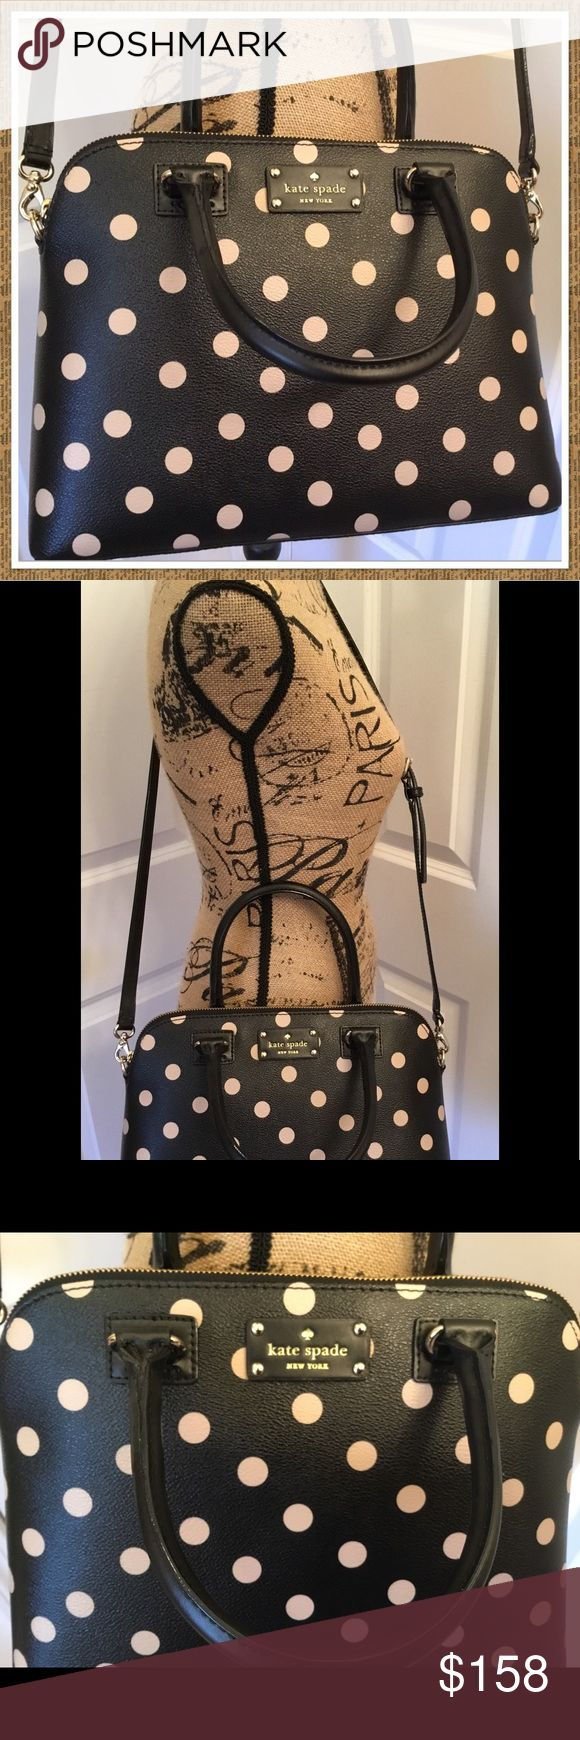 """Kate Spade Wellesley Small Rachelle Polka Dot NWT This is a brand new with tags Kate Spade Wellesley Small Rachelle.  Black with beige polka dots.   Grainy vinyl with leather trim and gold hardware.  Measures about 12.5"""" (L) x 9"""" (H) x 5"""" (W).  The short handle have a drop of about 4.5"""", and it has a removable & adjustable crossbody strap.  I noticed a small imperfection in one of the dots on the back of the bag.  It is so tiny that the camera couldn't even capture it.  Super nice bag! kate…"""